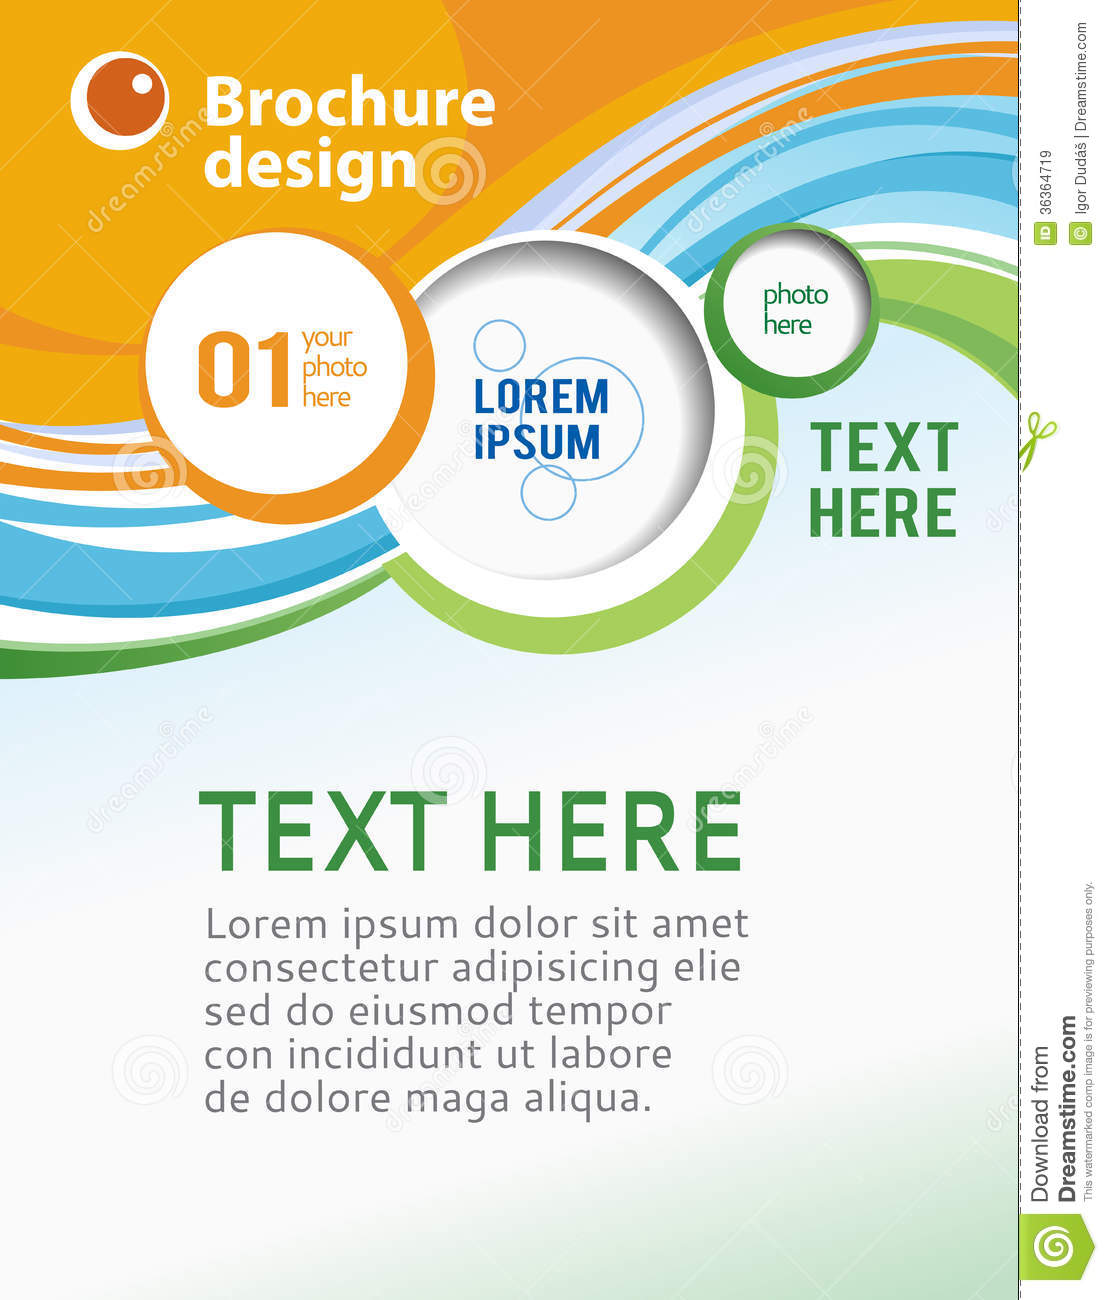 Business brochure template stock illustration illustration of business brochure template accmission Images